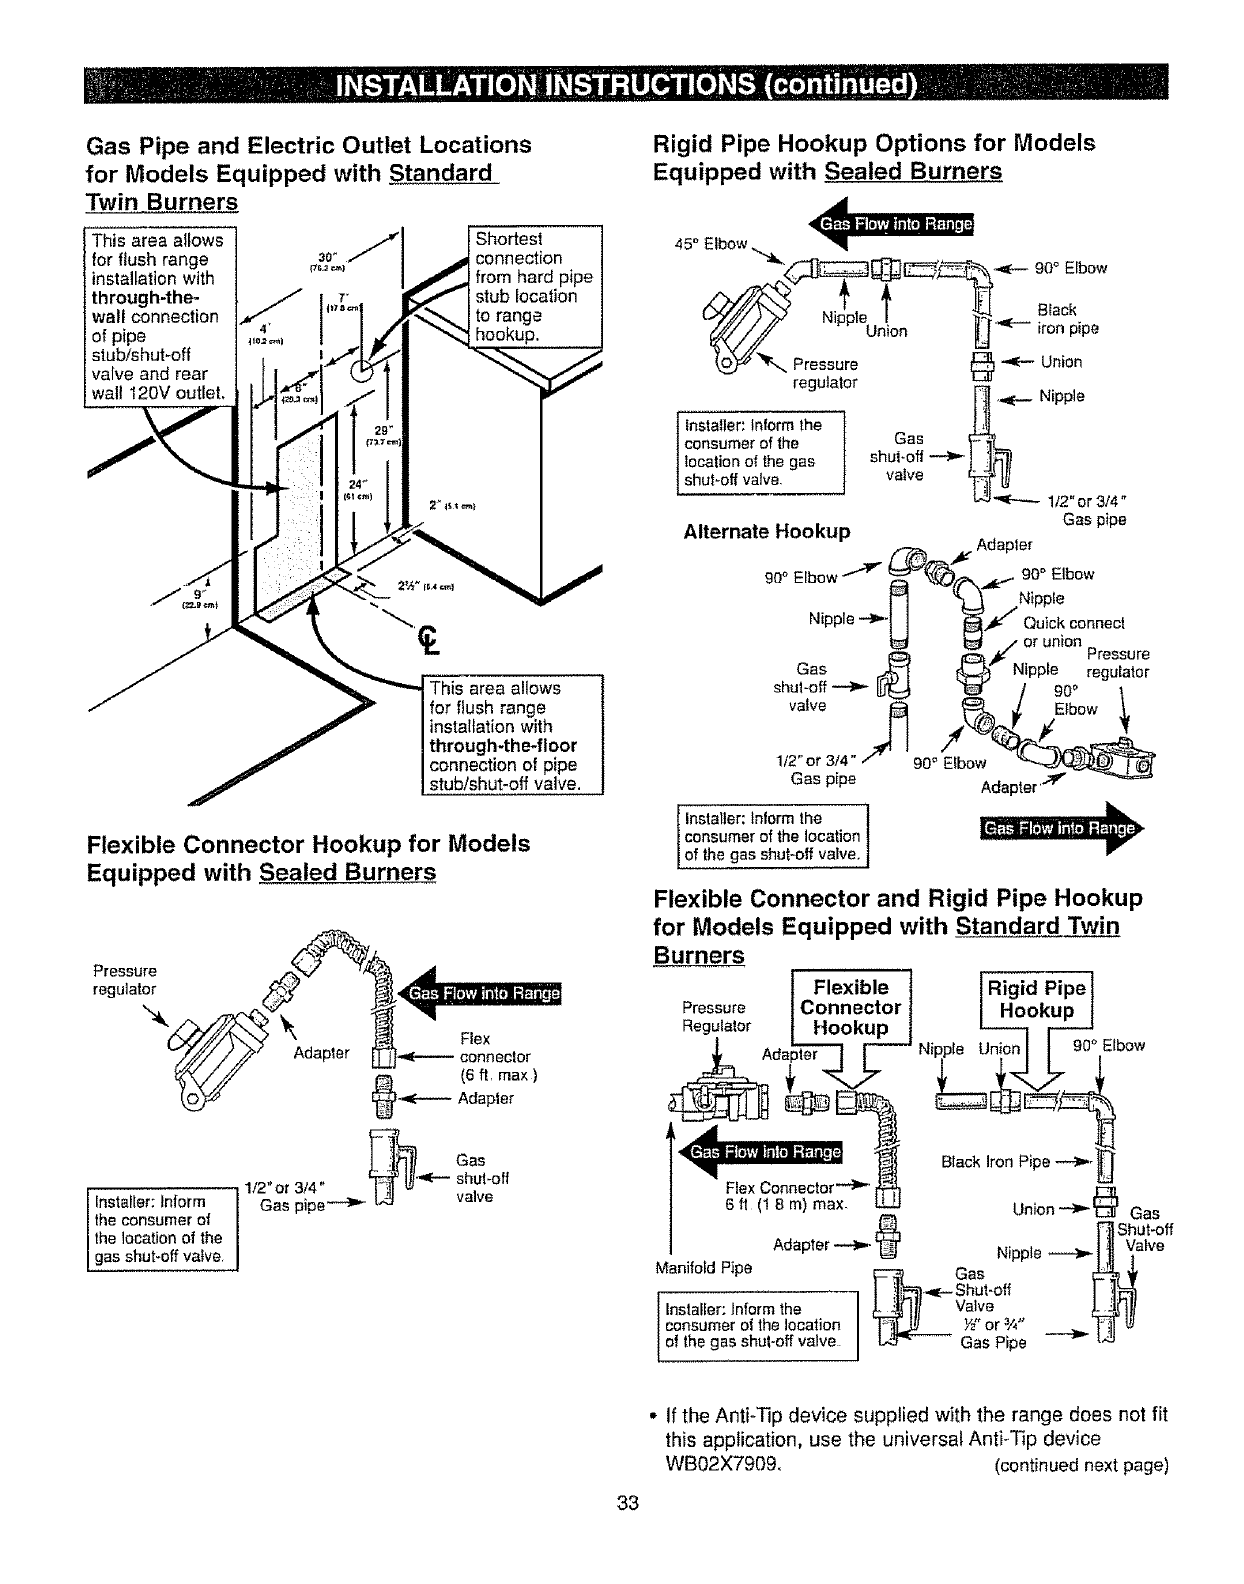 Page 33 of Kenmore Range 362.61020 User Guide